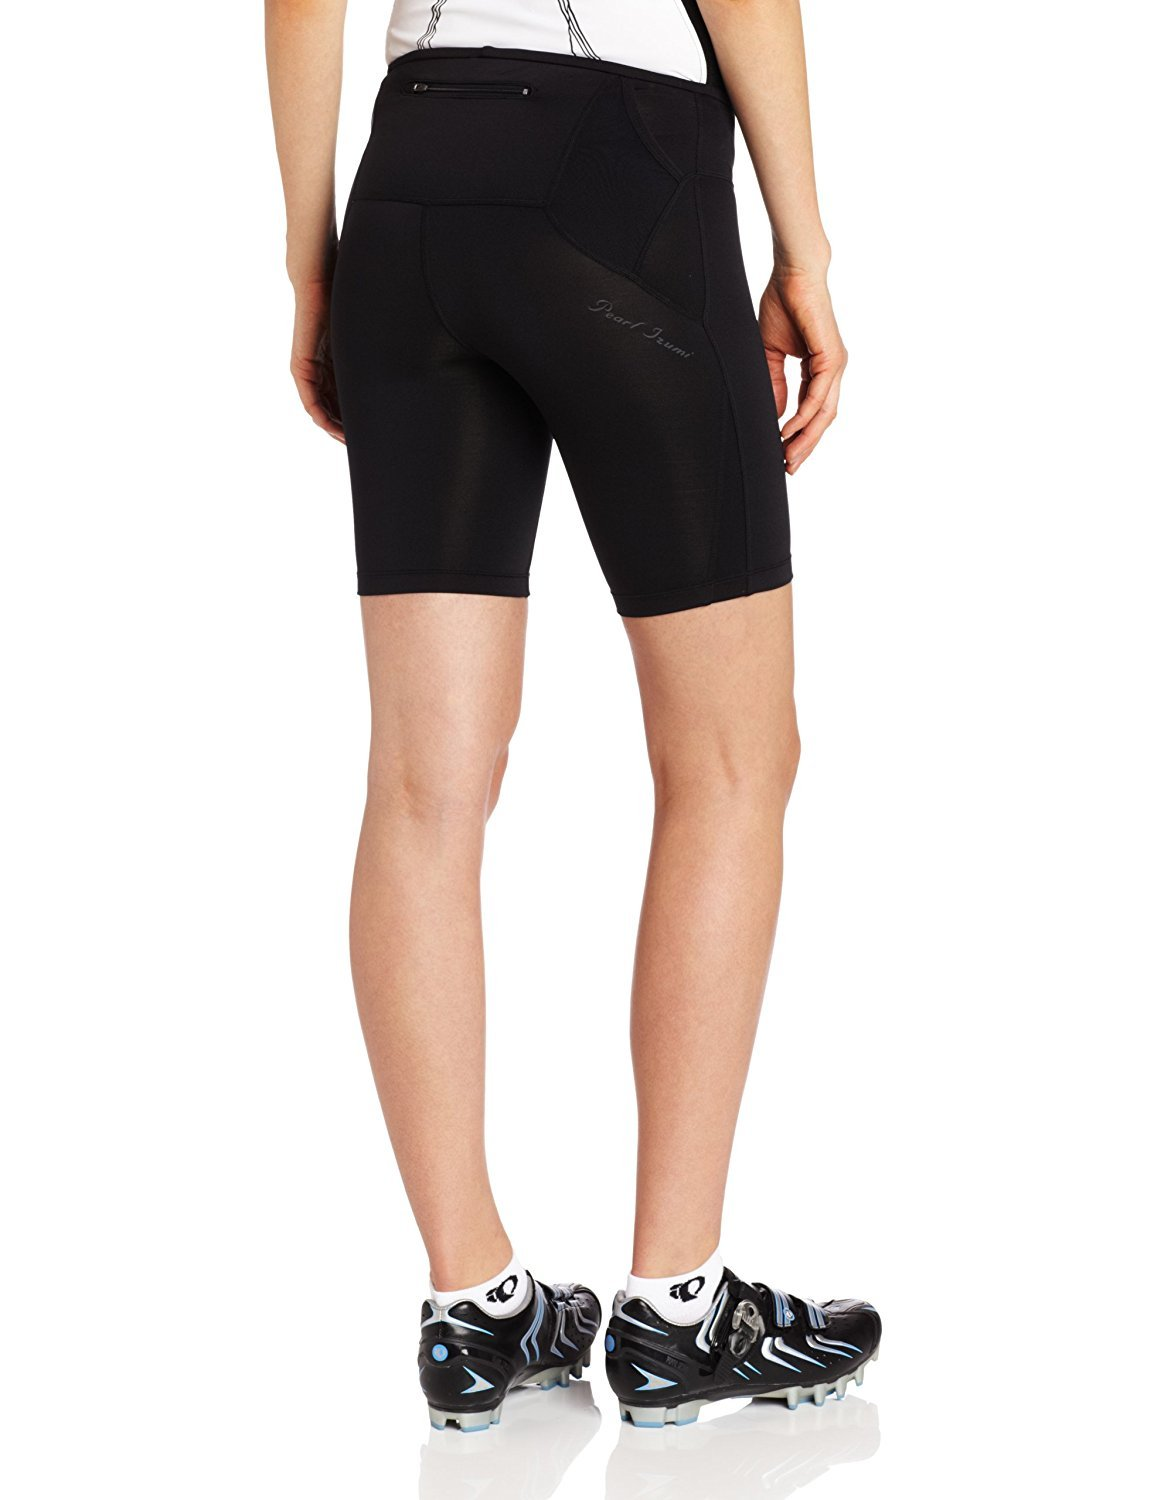 New ProductPearl Izumi Women's Ultra Short Tights, Black, Medium by Generic